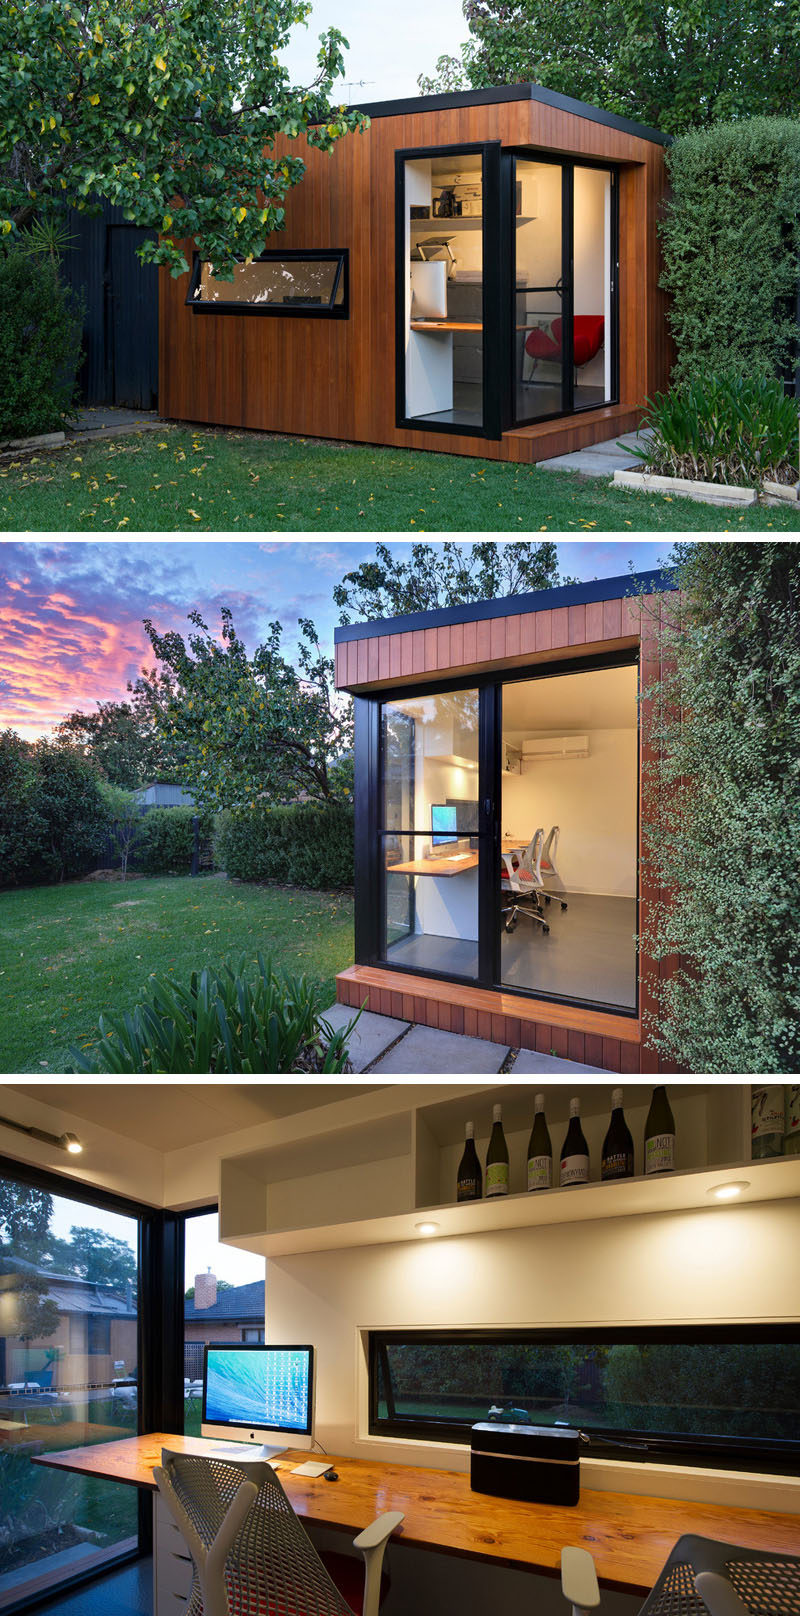 backyard office prefab. this prefab backyard home office is covered in wood and black trim surrounds the windows sliding door